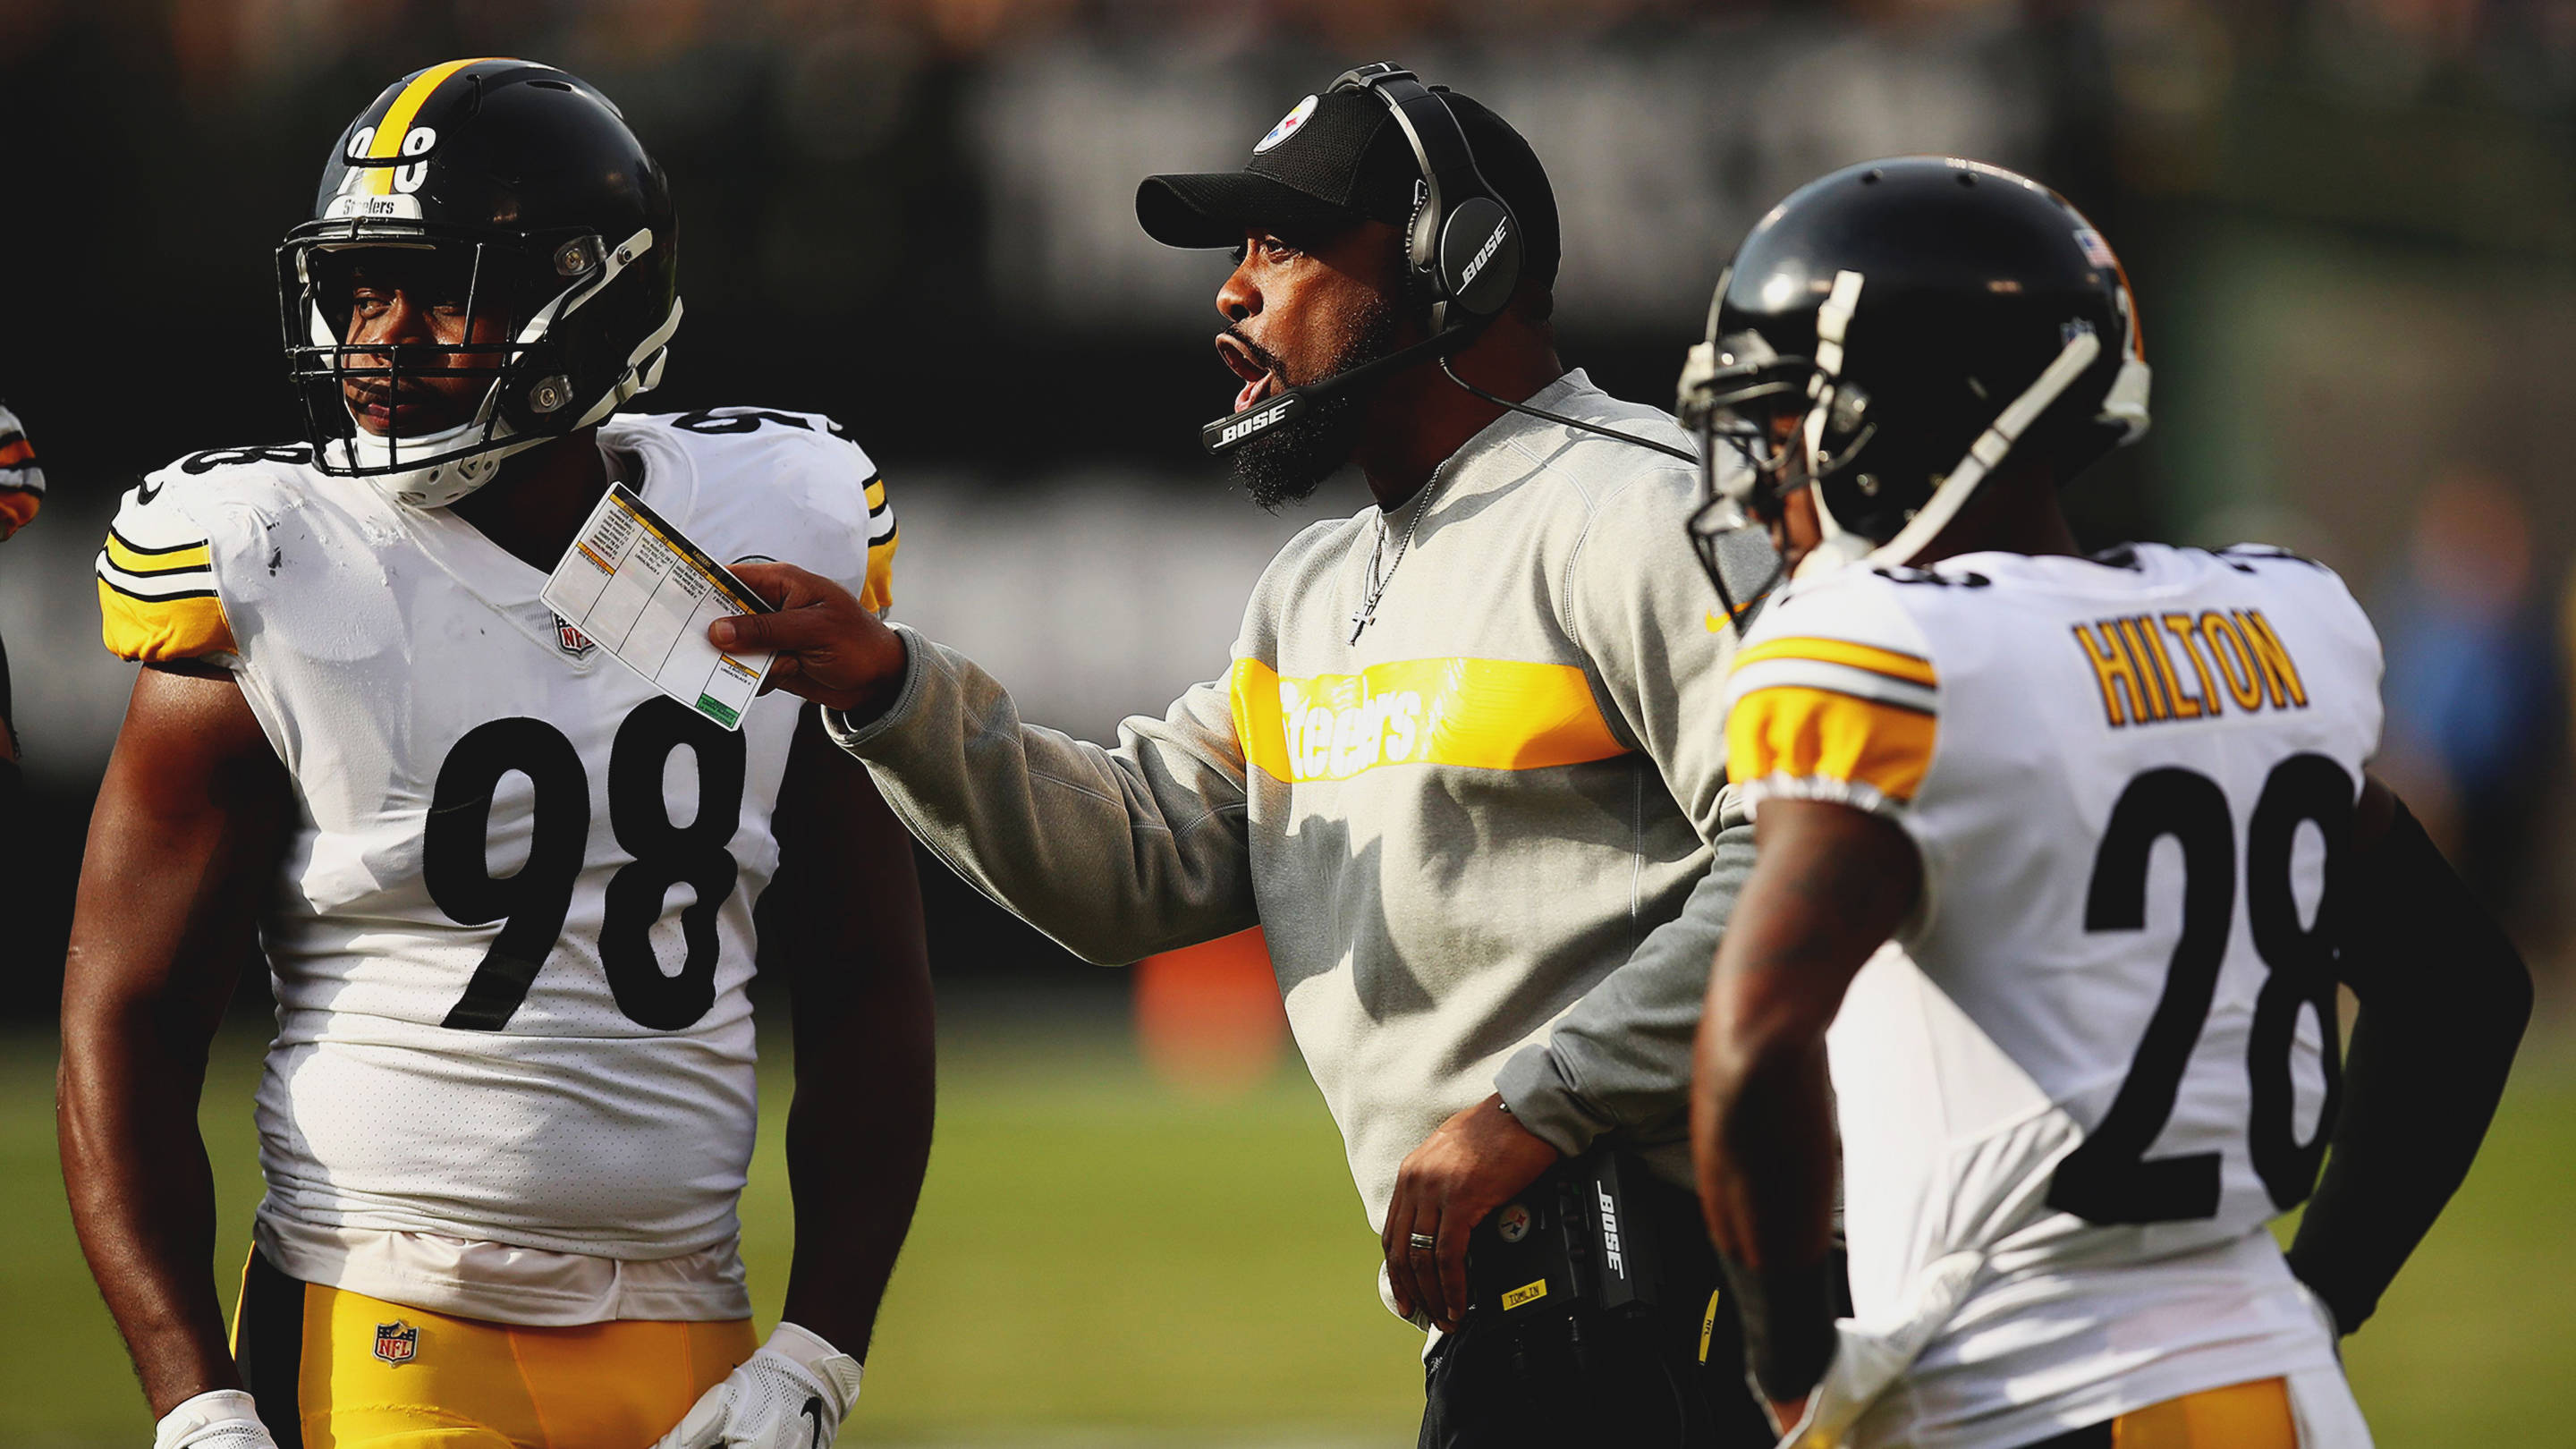 NFL's Mike Tomlin